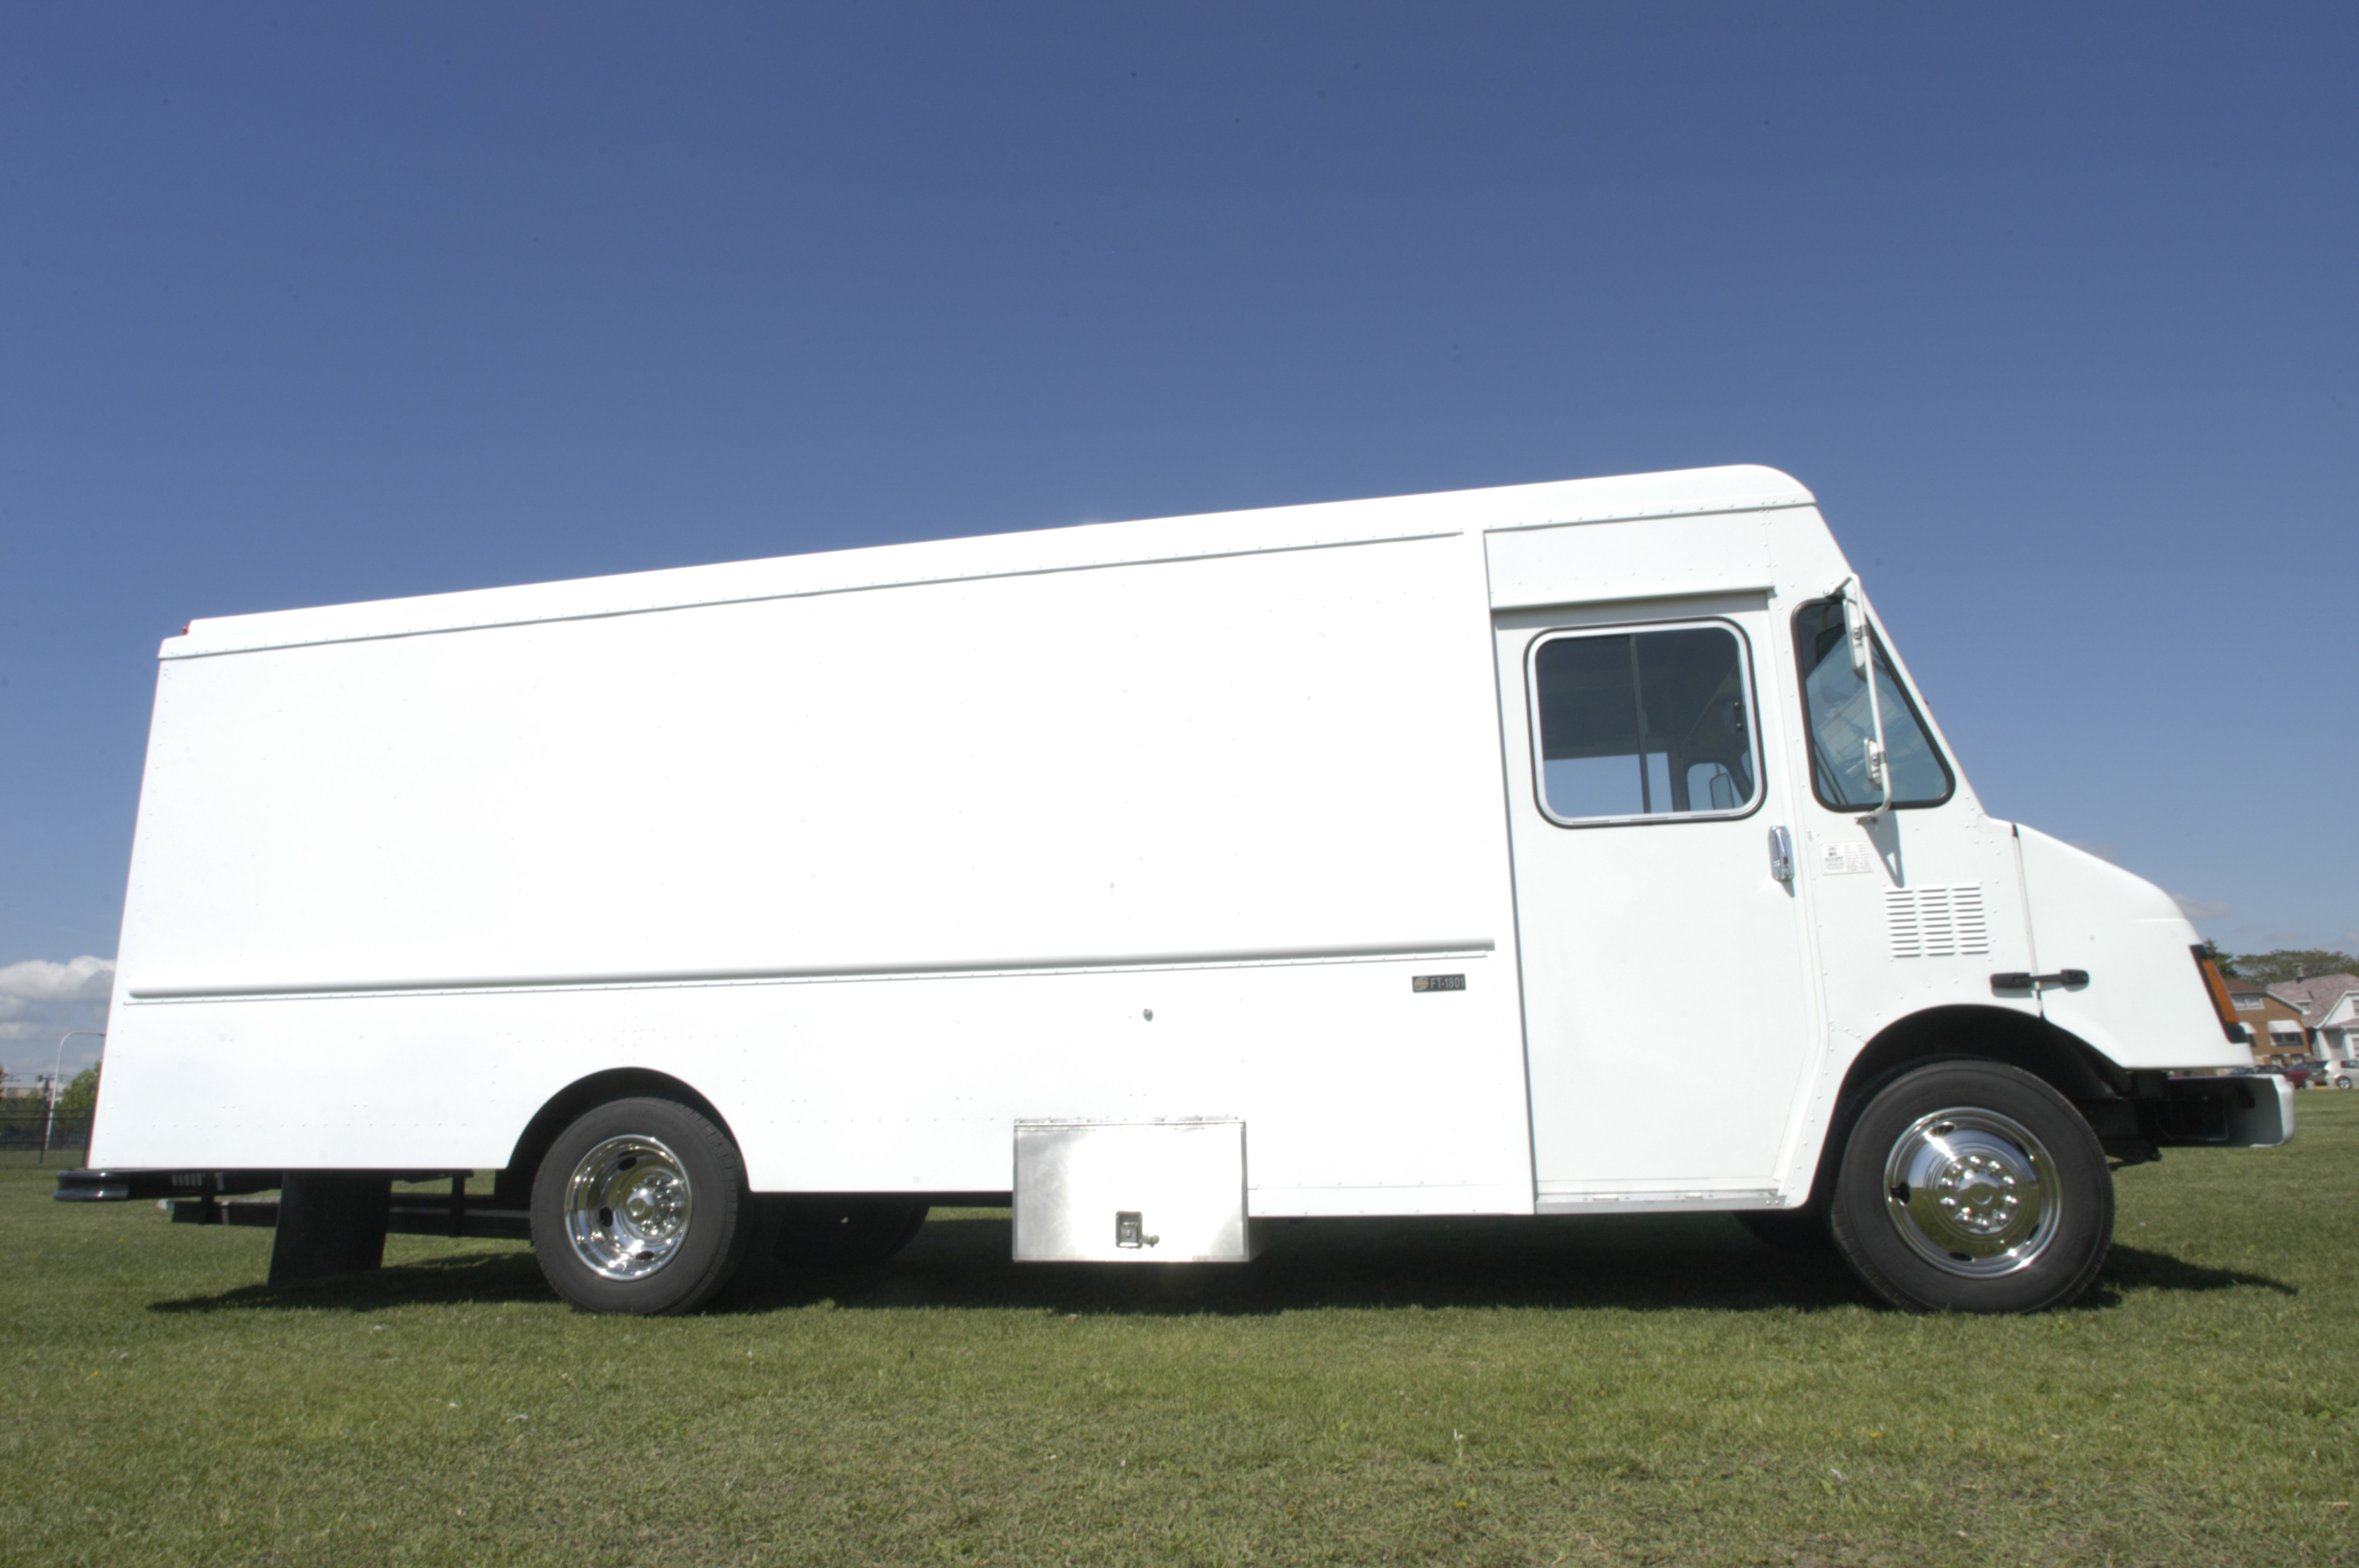 Food Sale: Chicago Food Truck Fully Loaded! For Sale